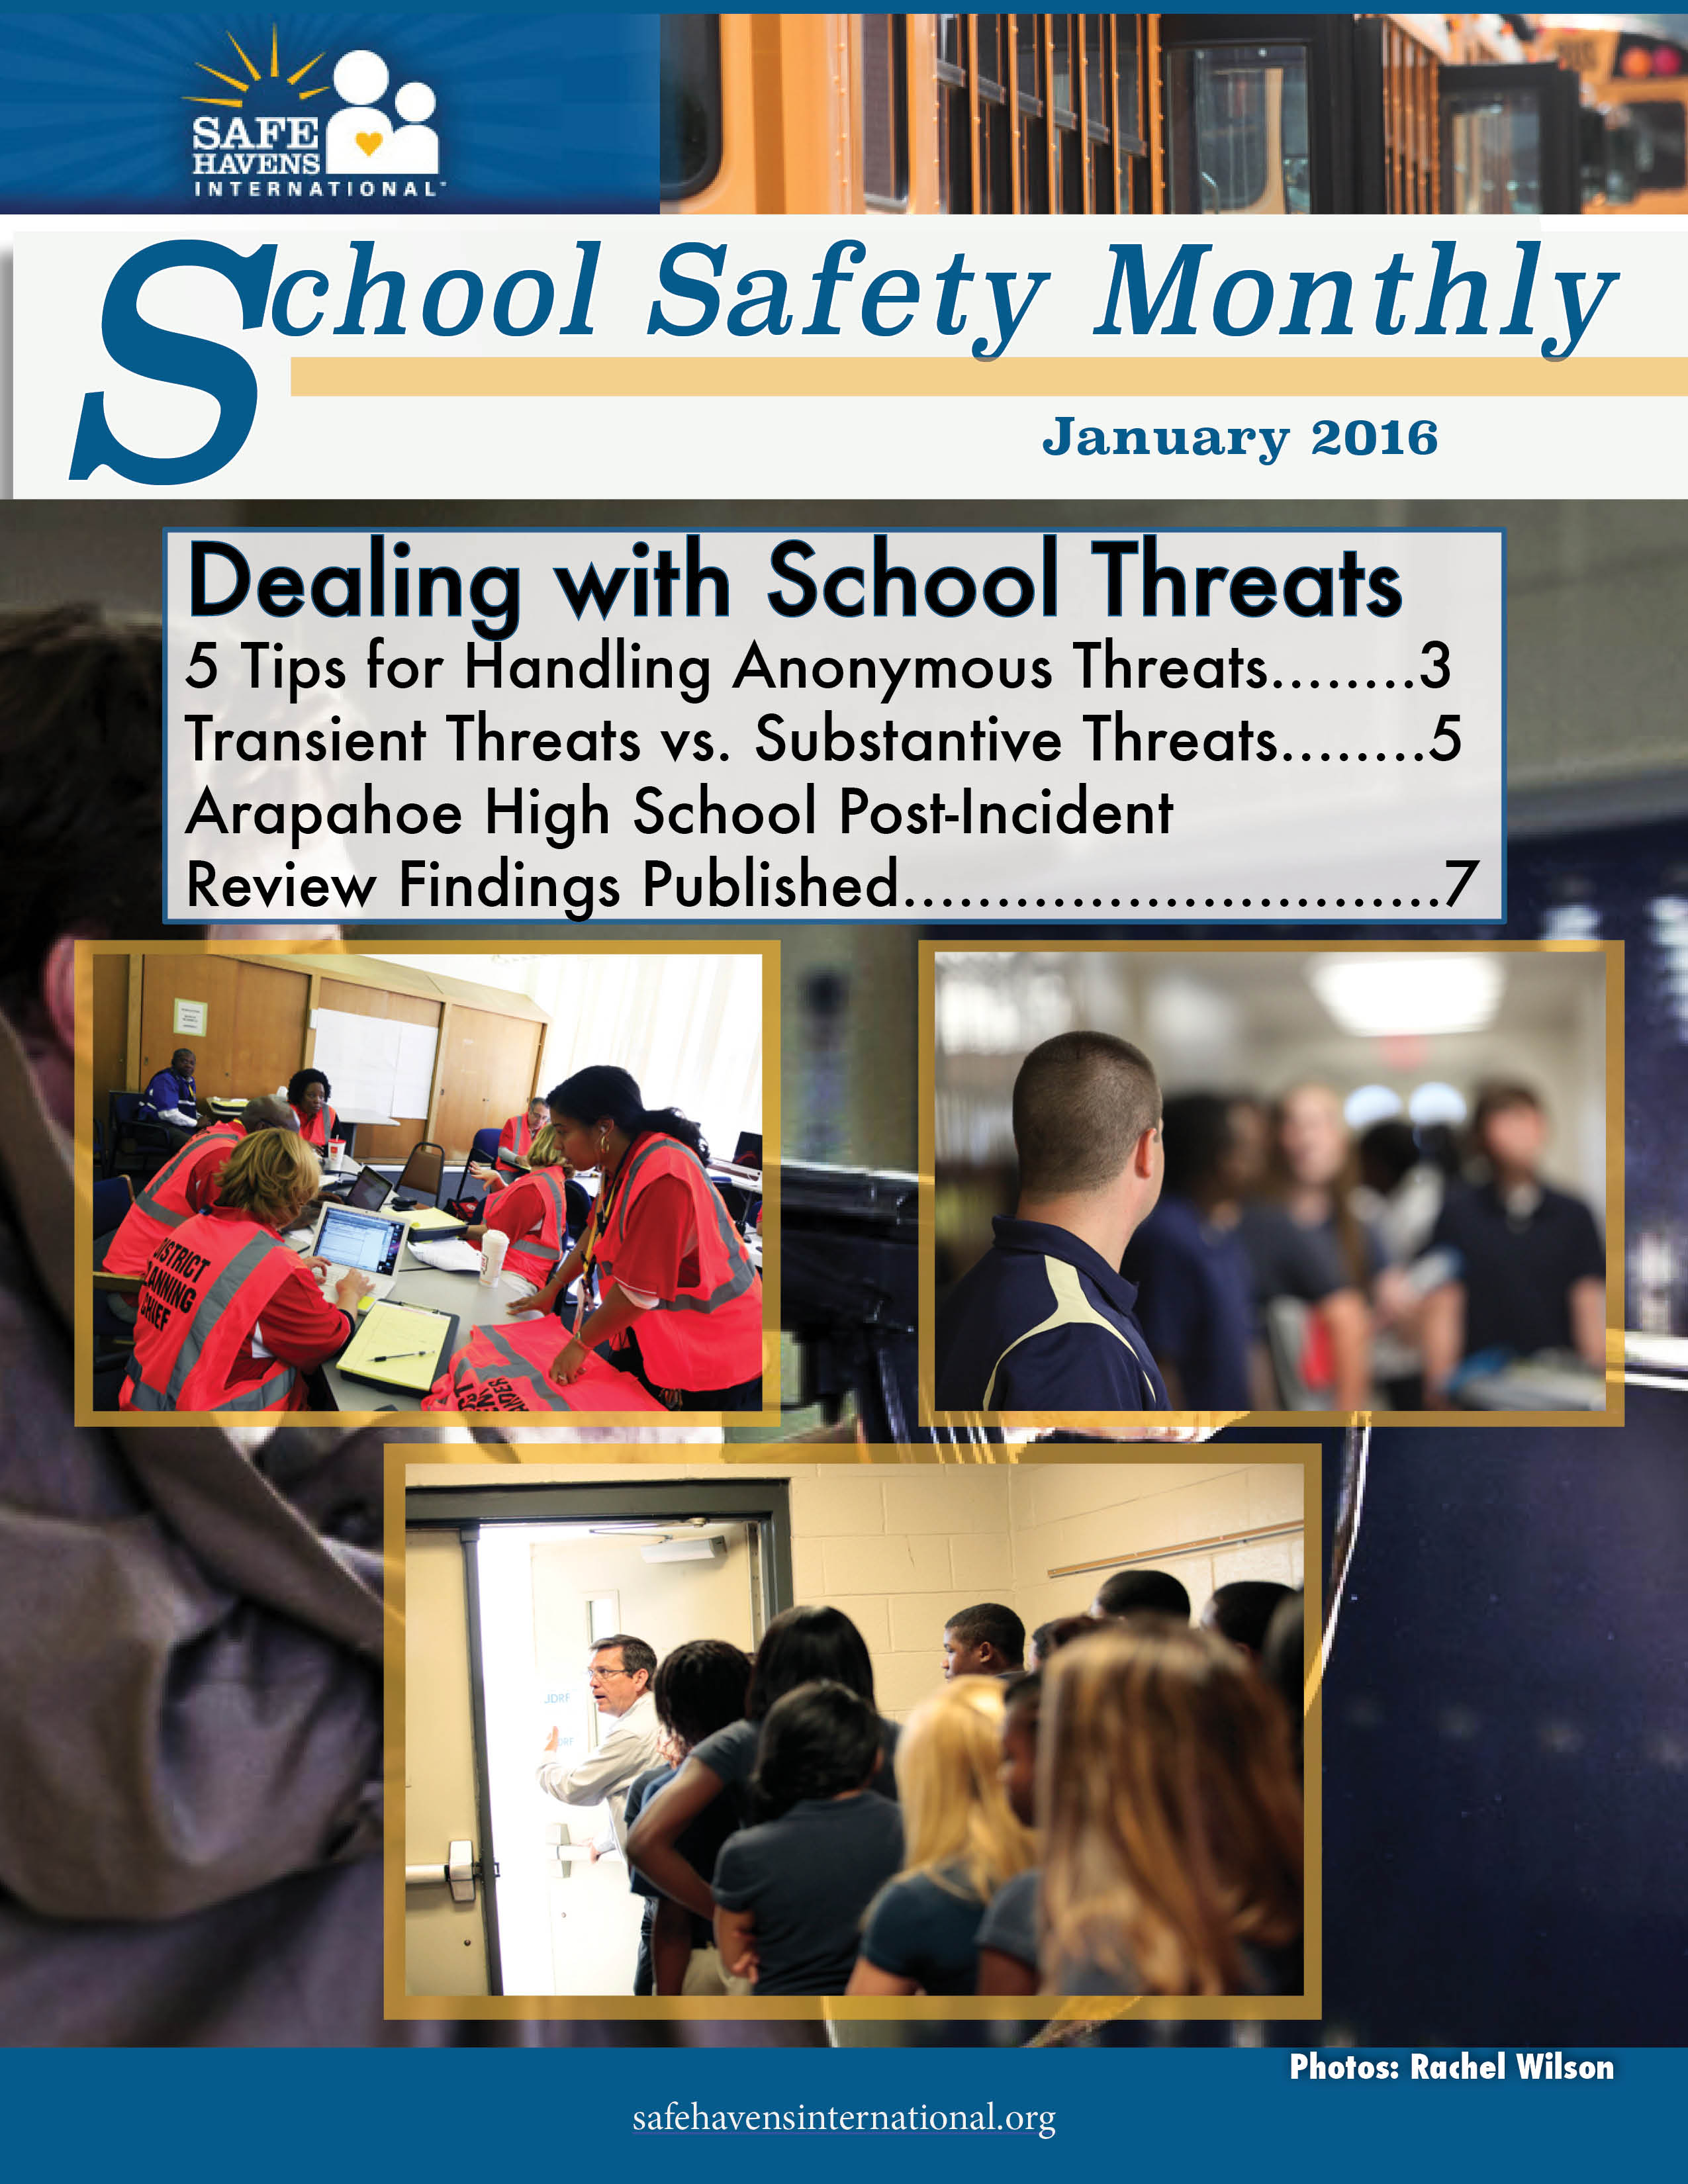 School Safety Monthly, January 2016: School Threats